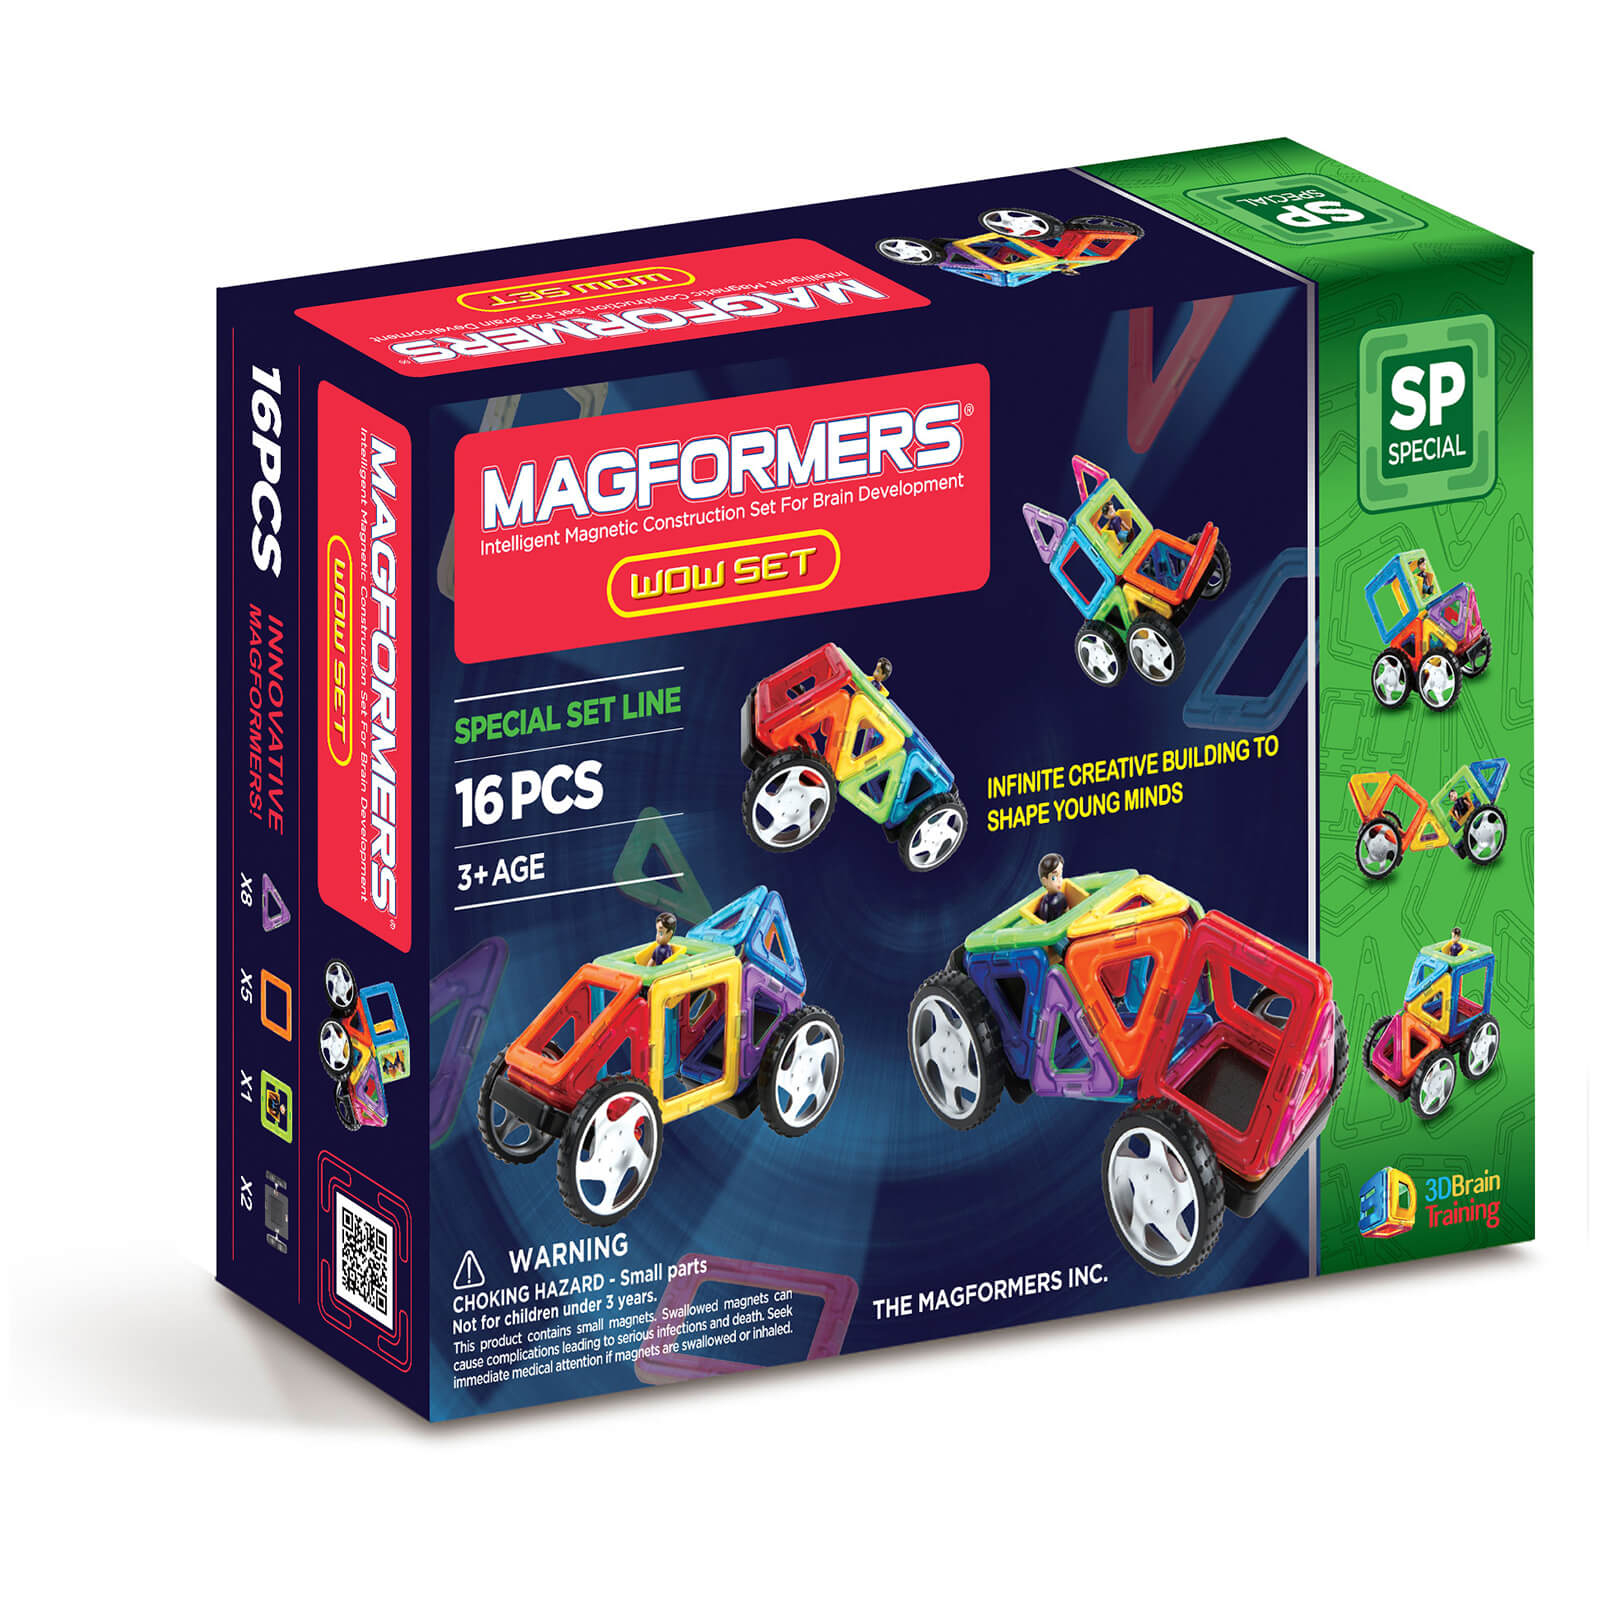 Magformers Wow Set – 16 Pieces